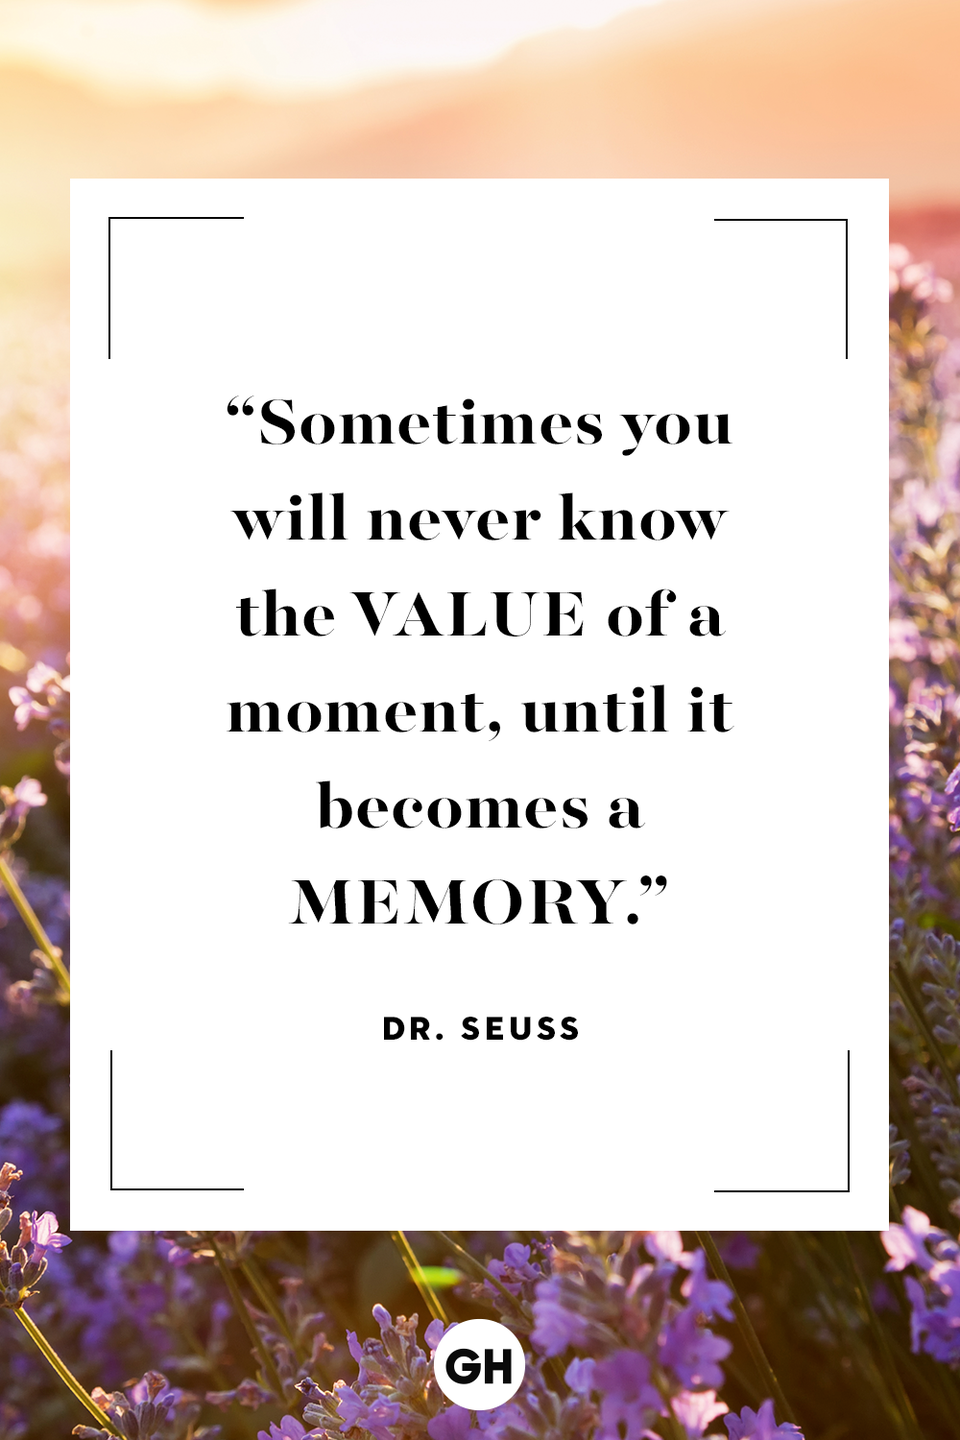 <p>Sometimes you will never know the value of a moment, until it becomes a memory.</p>